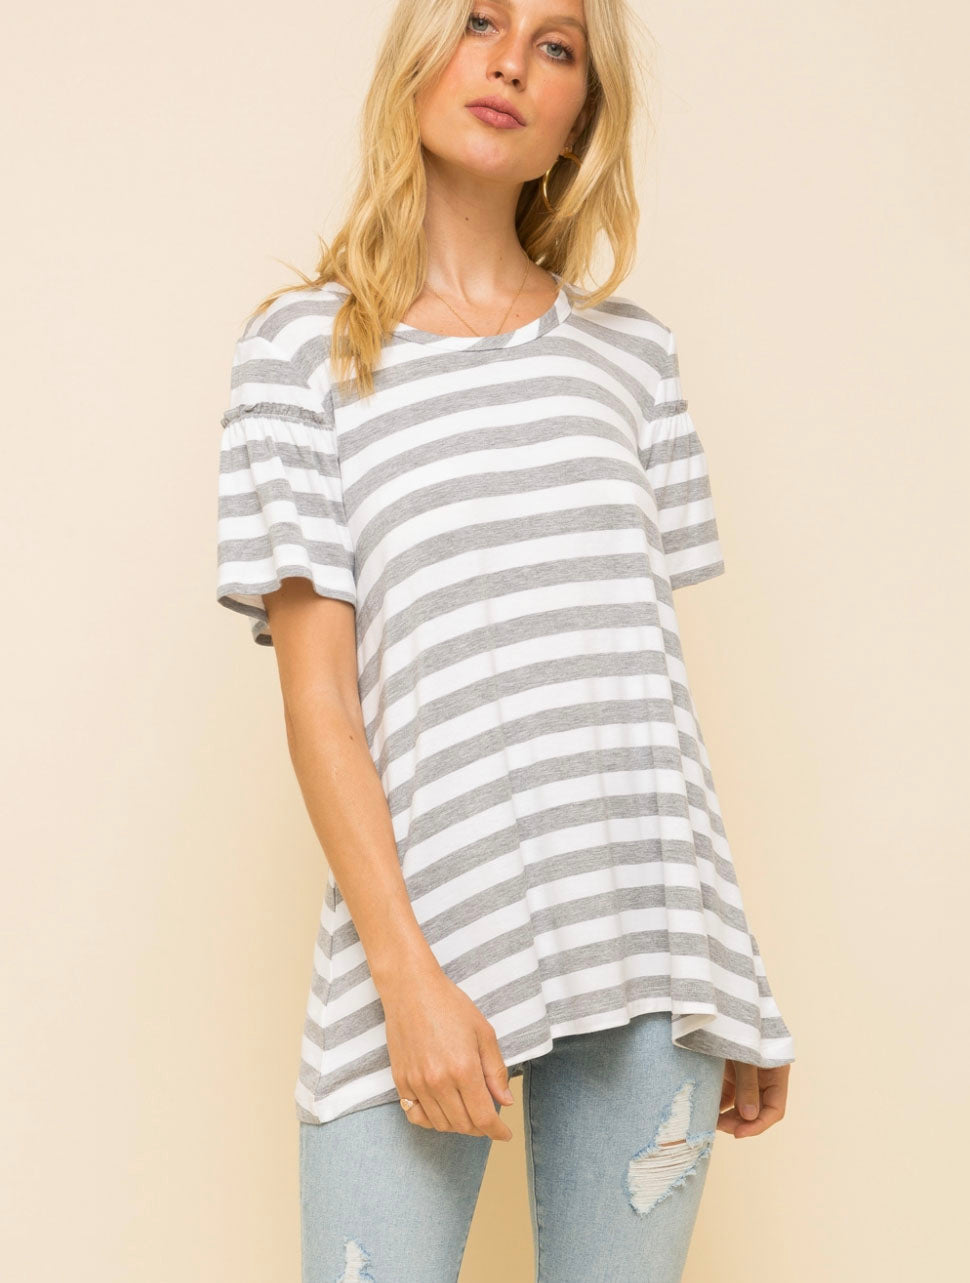 Hem & Thread Striped Ruffle Top in Heather Gray